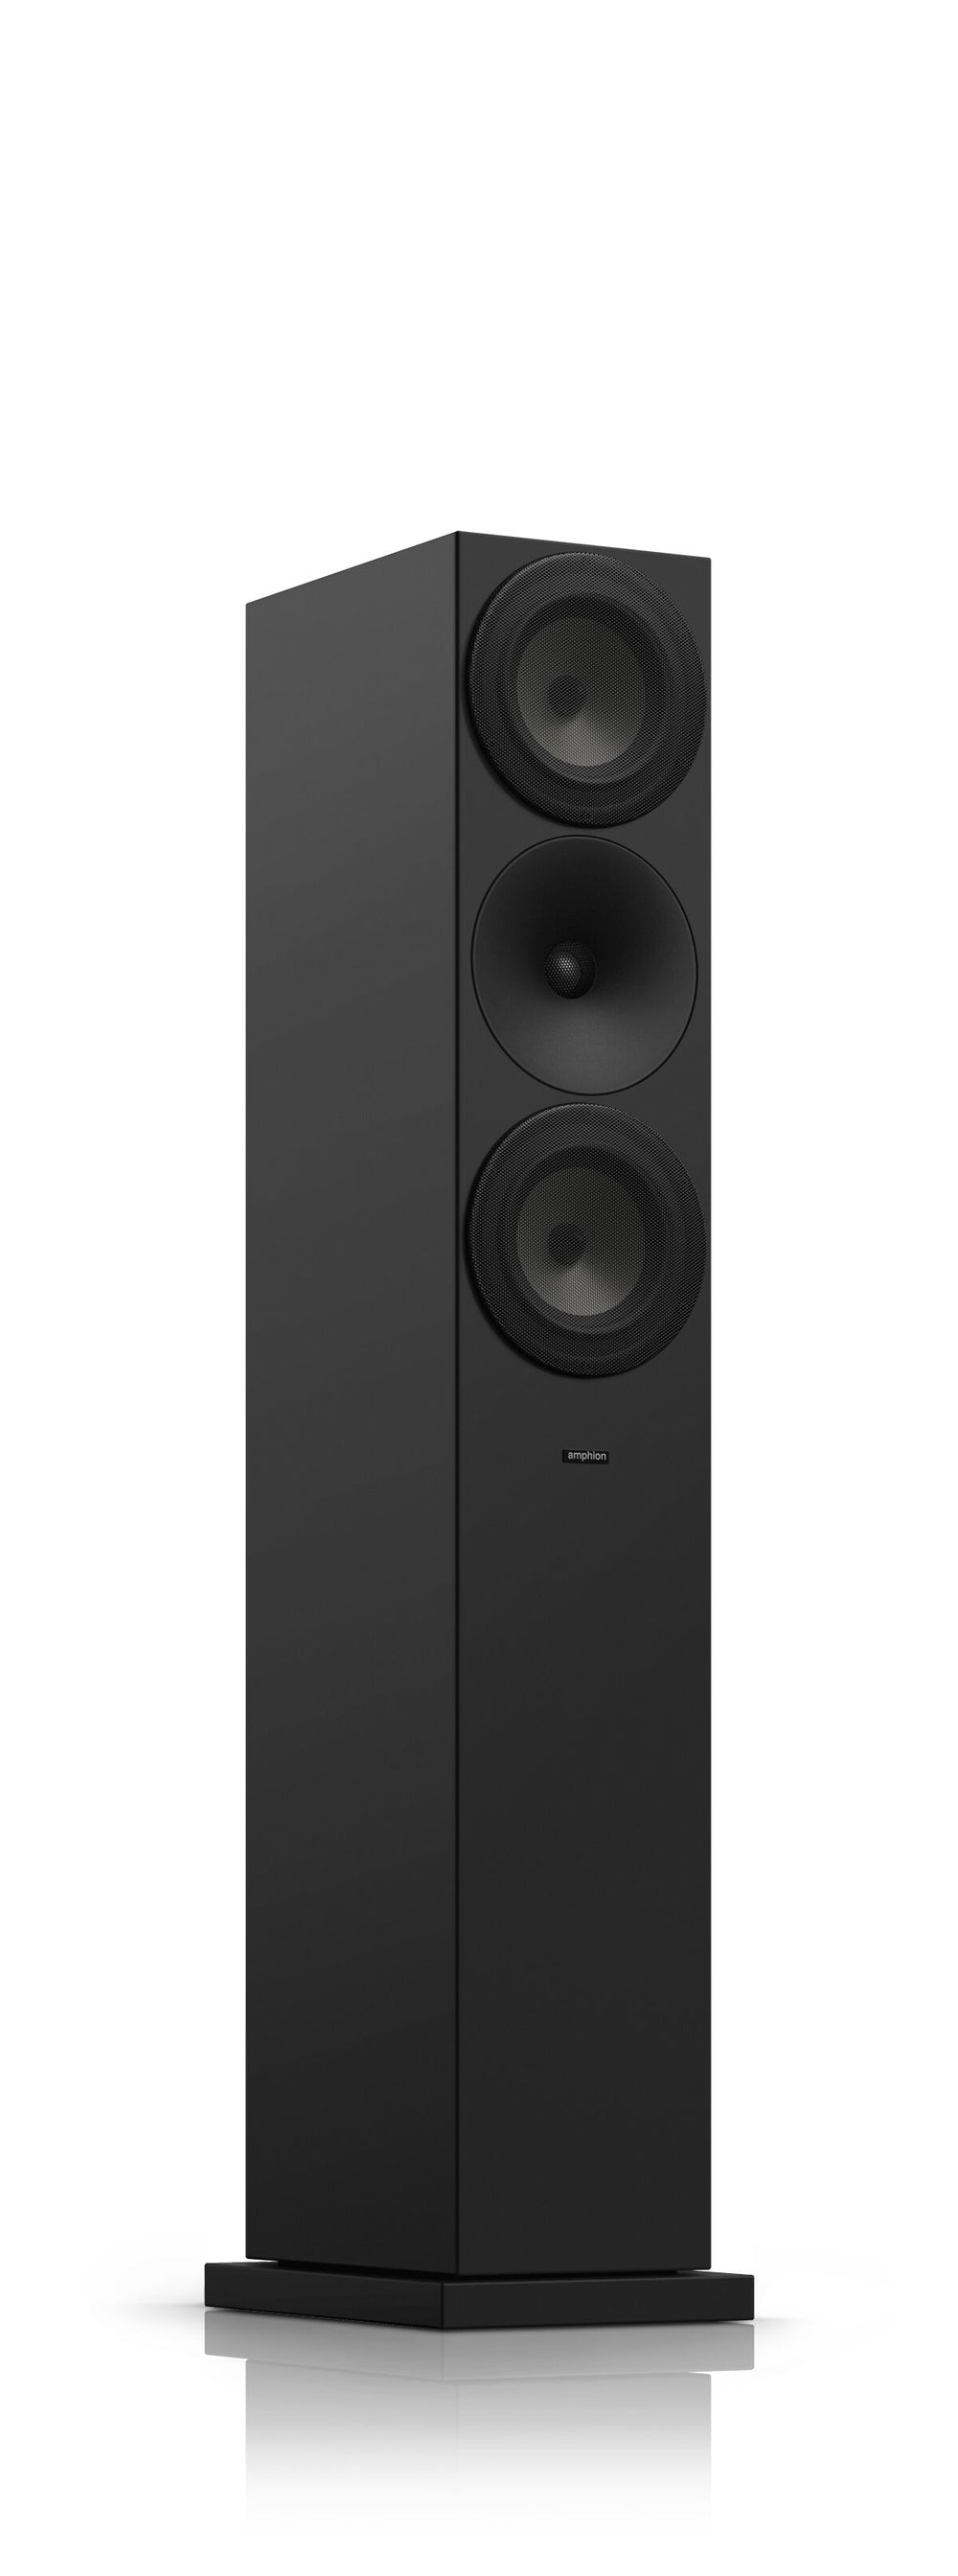 Amphion Argon7LS Floorstanding Loudspeaker - Alma Music and Audio - San Diego, California